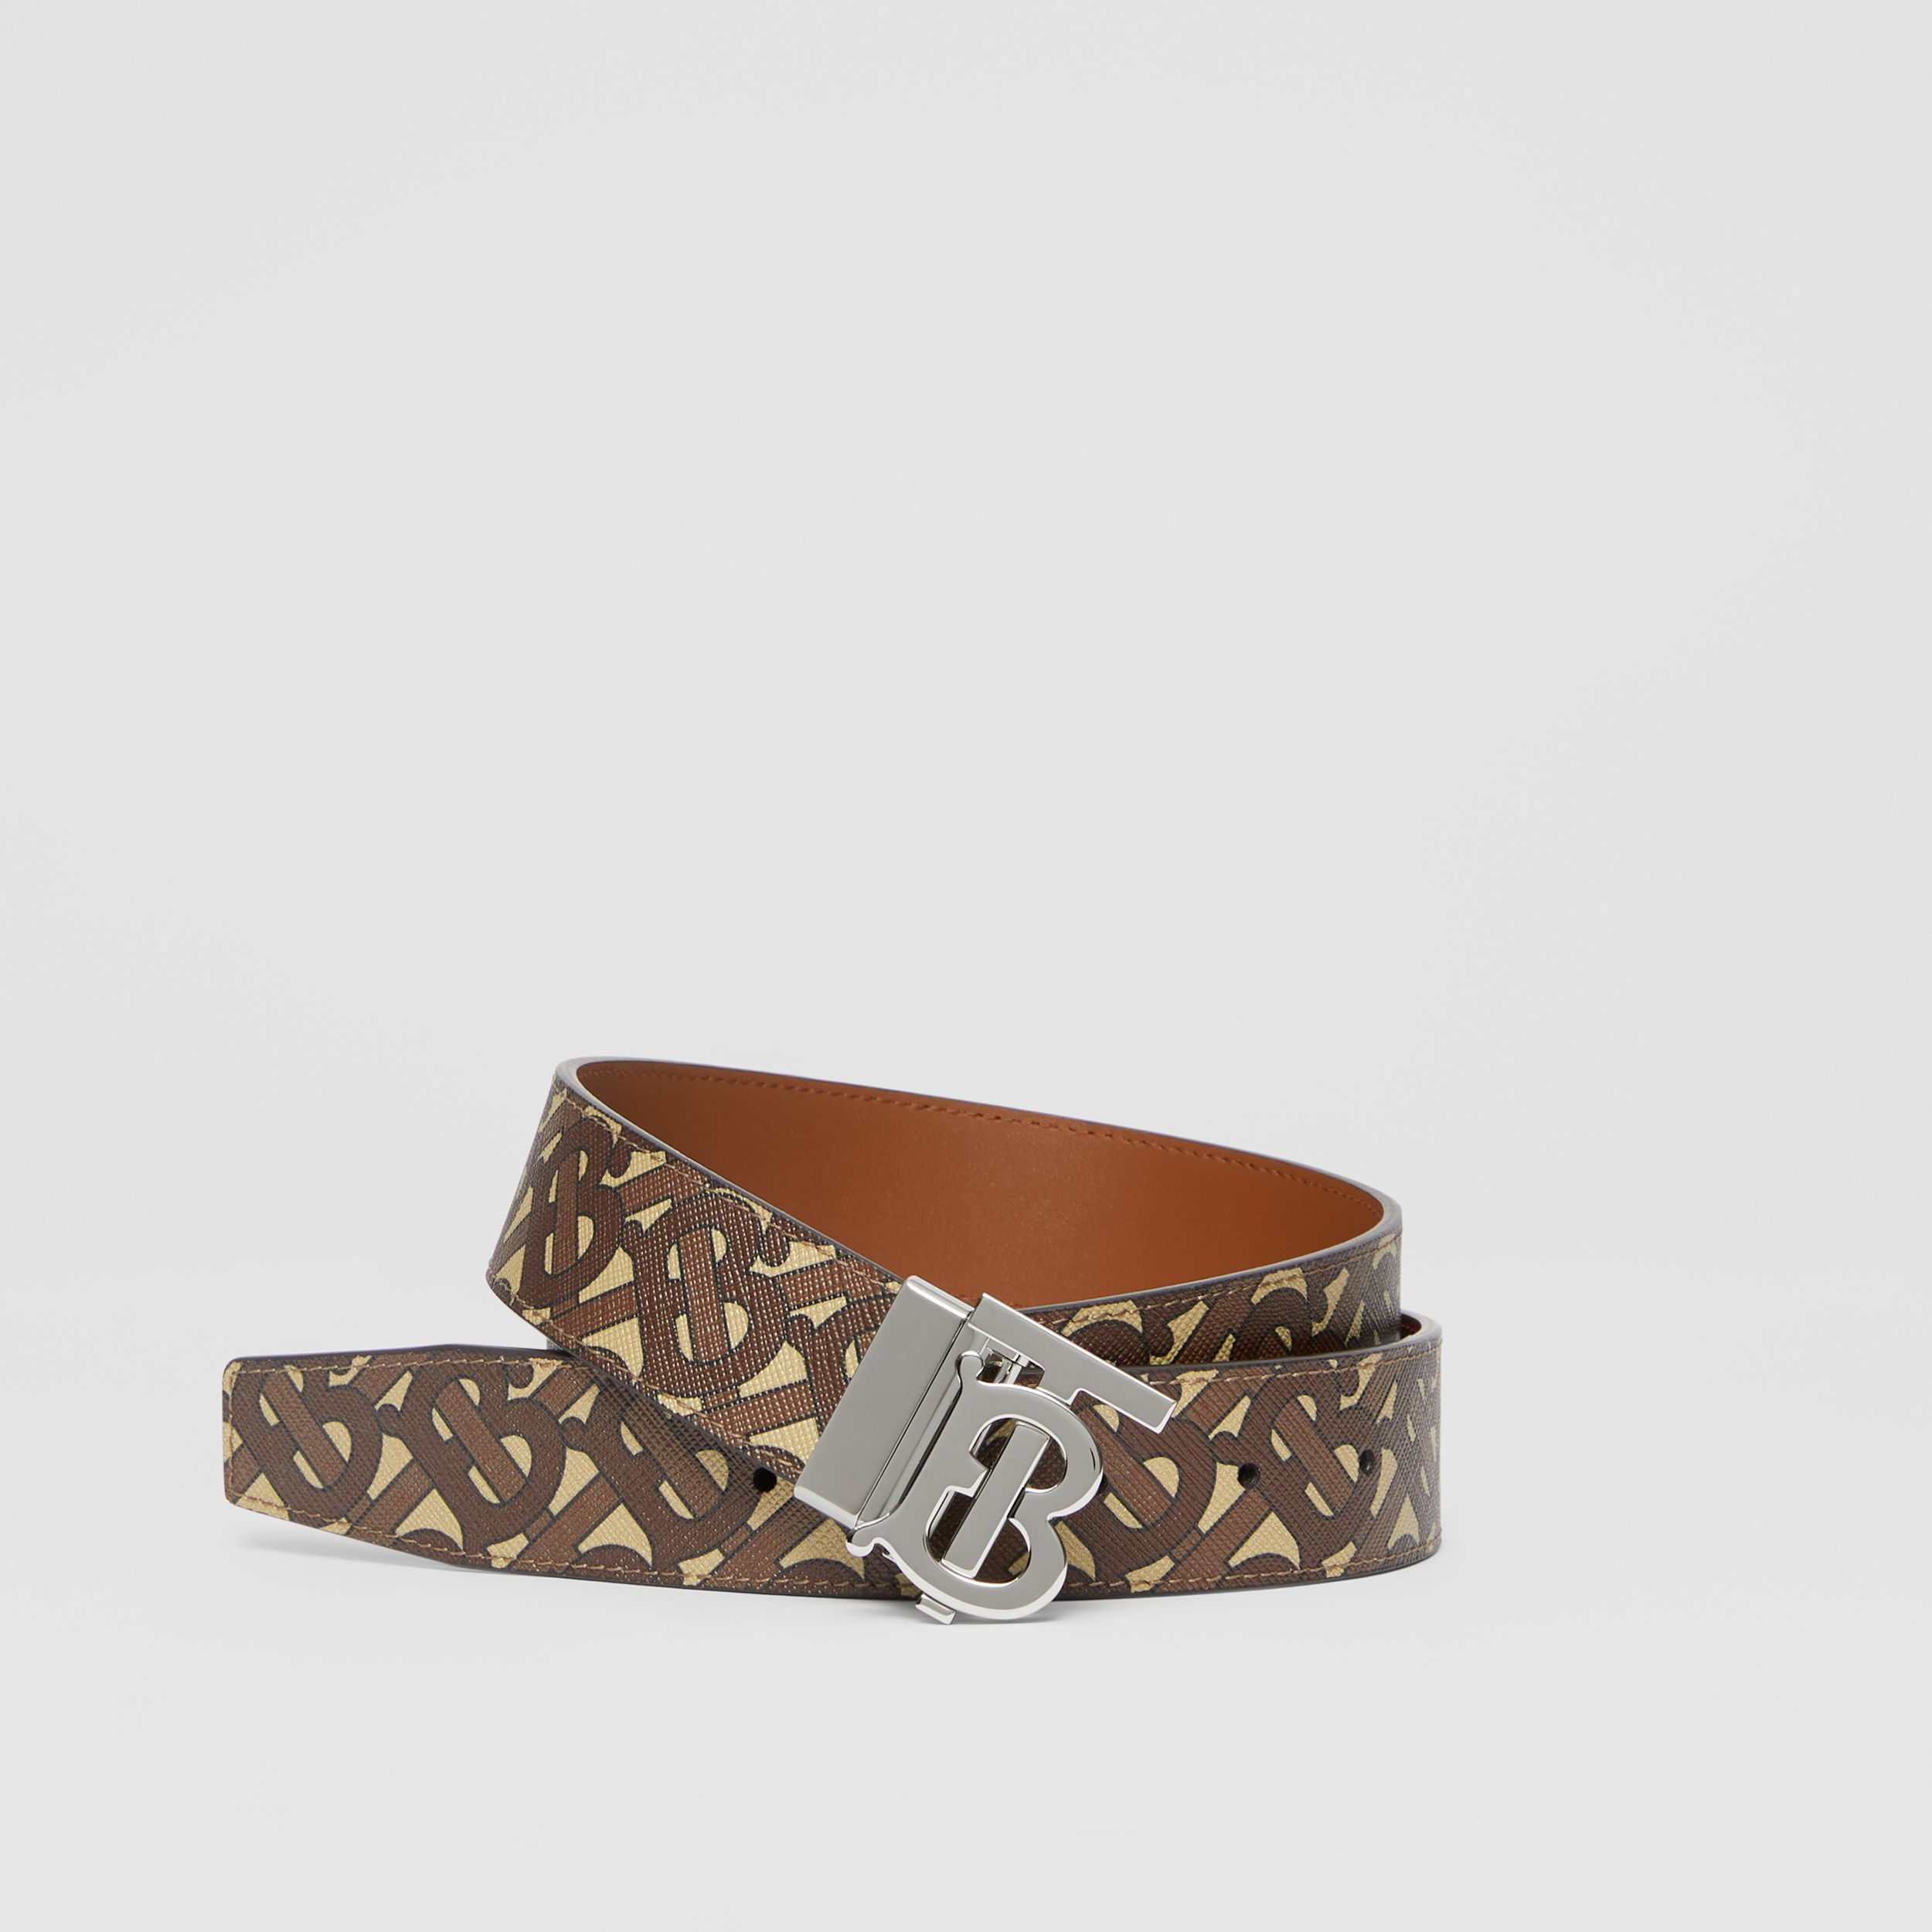 Reversible Monogram Motif E-canvas and Leather Belt in Bridle Brown/tan - Men | Burberry - 1